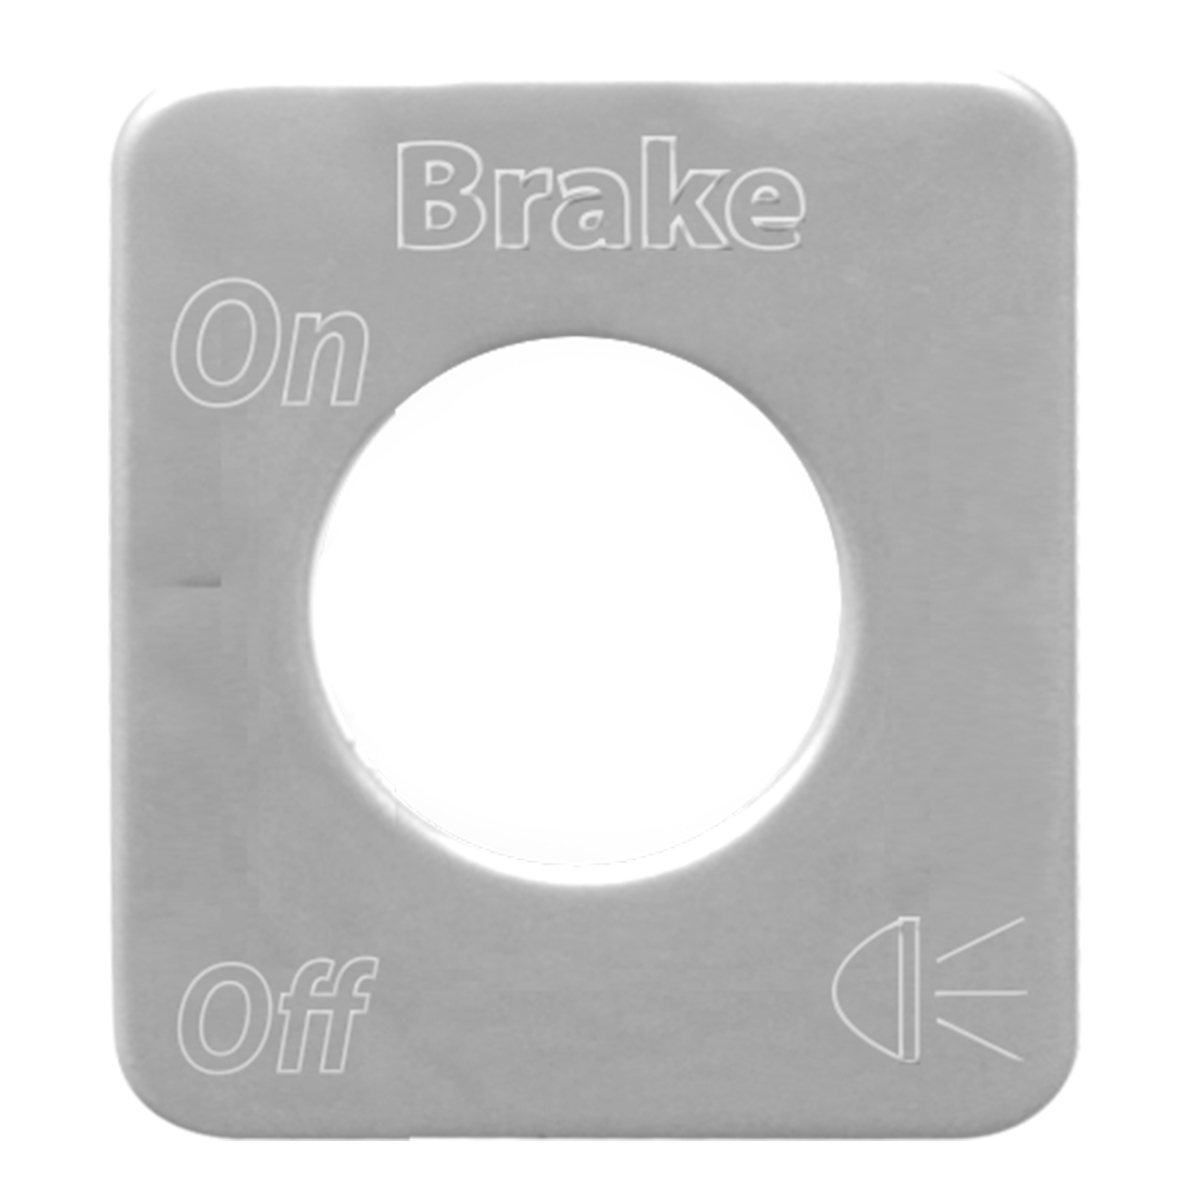 68527 Stainless Steel Brake Light Switch Plate for KW